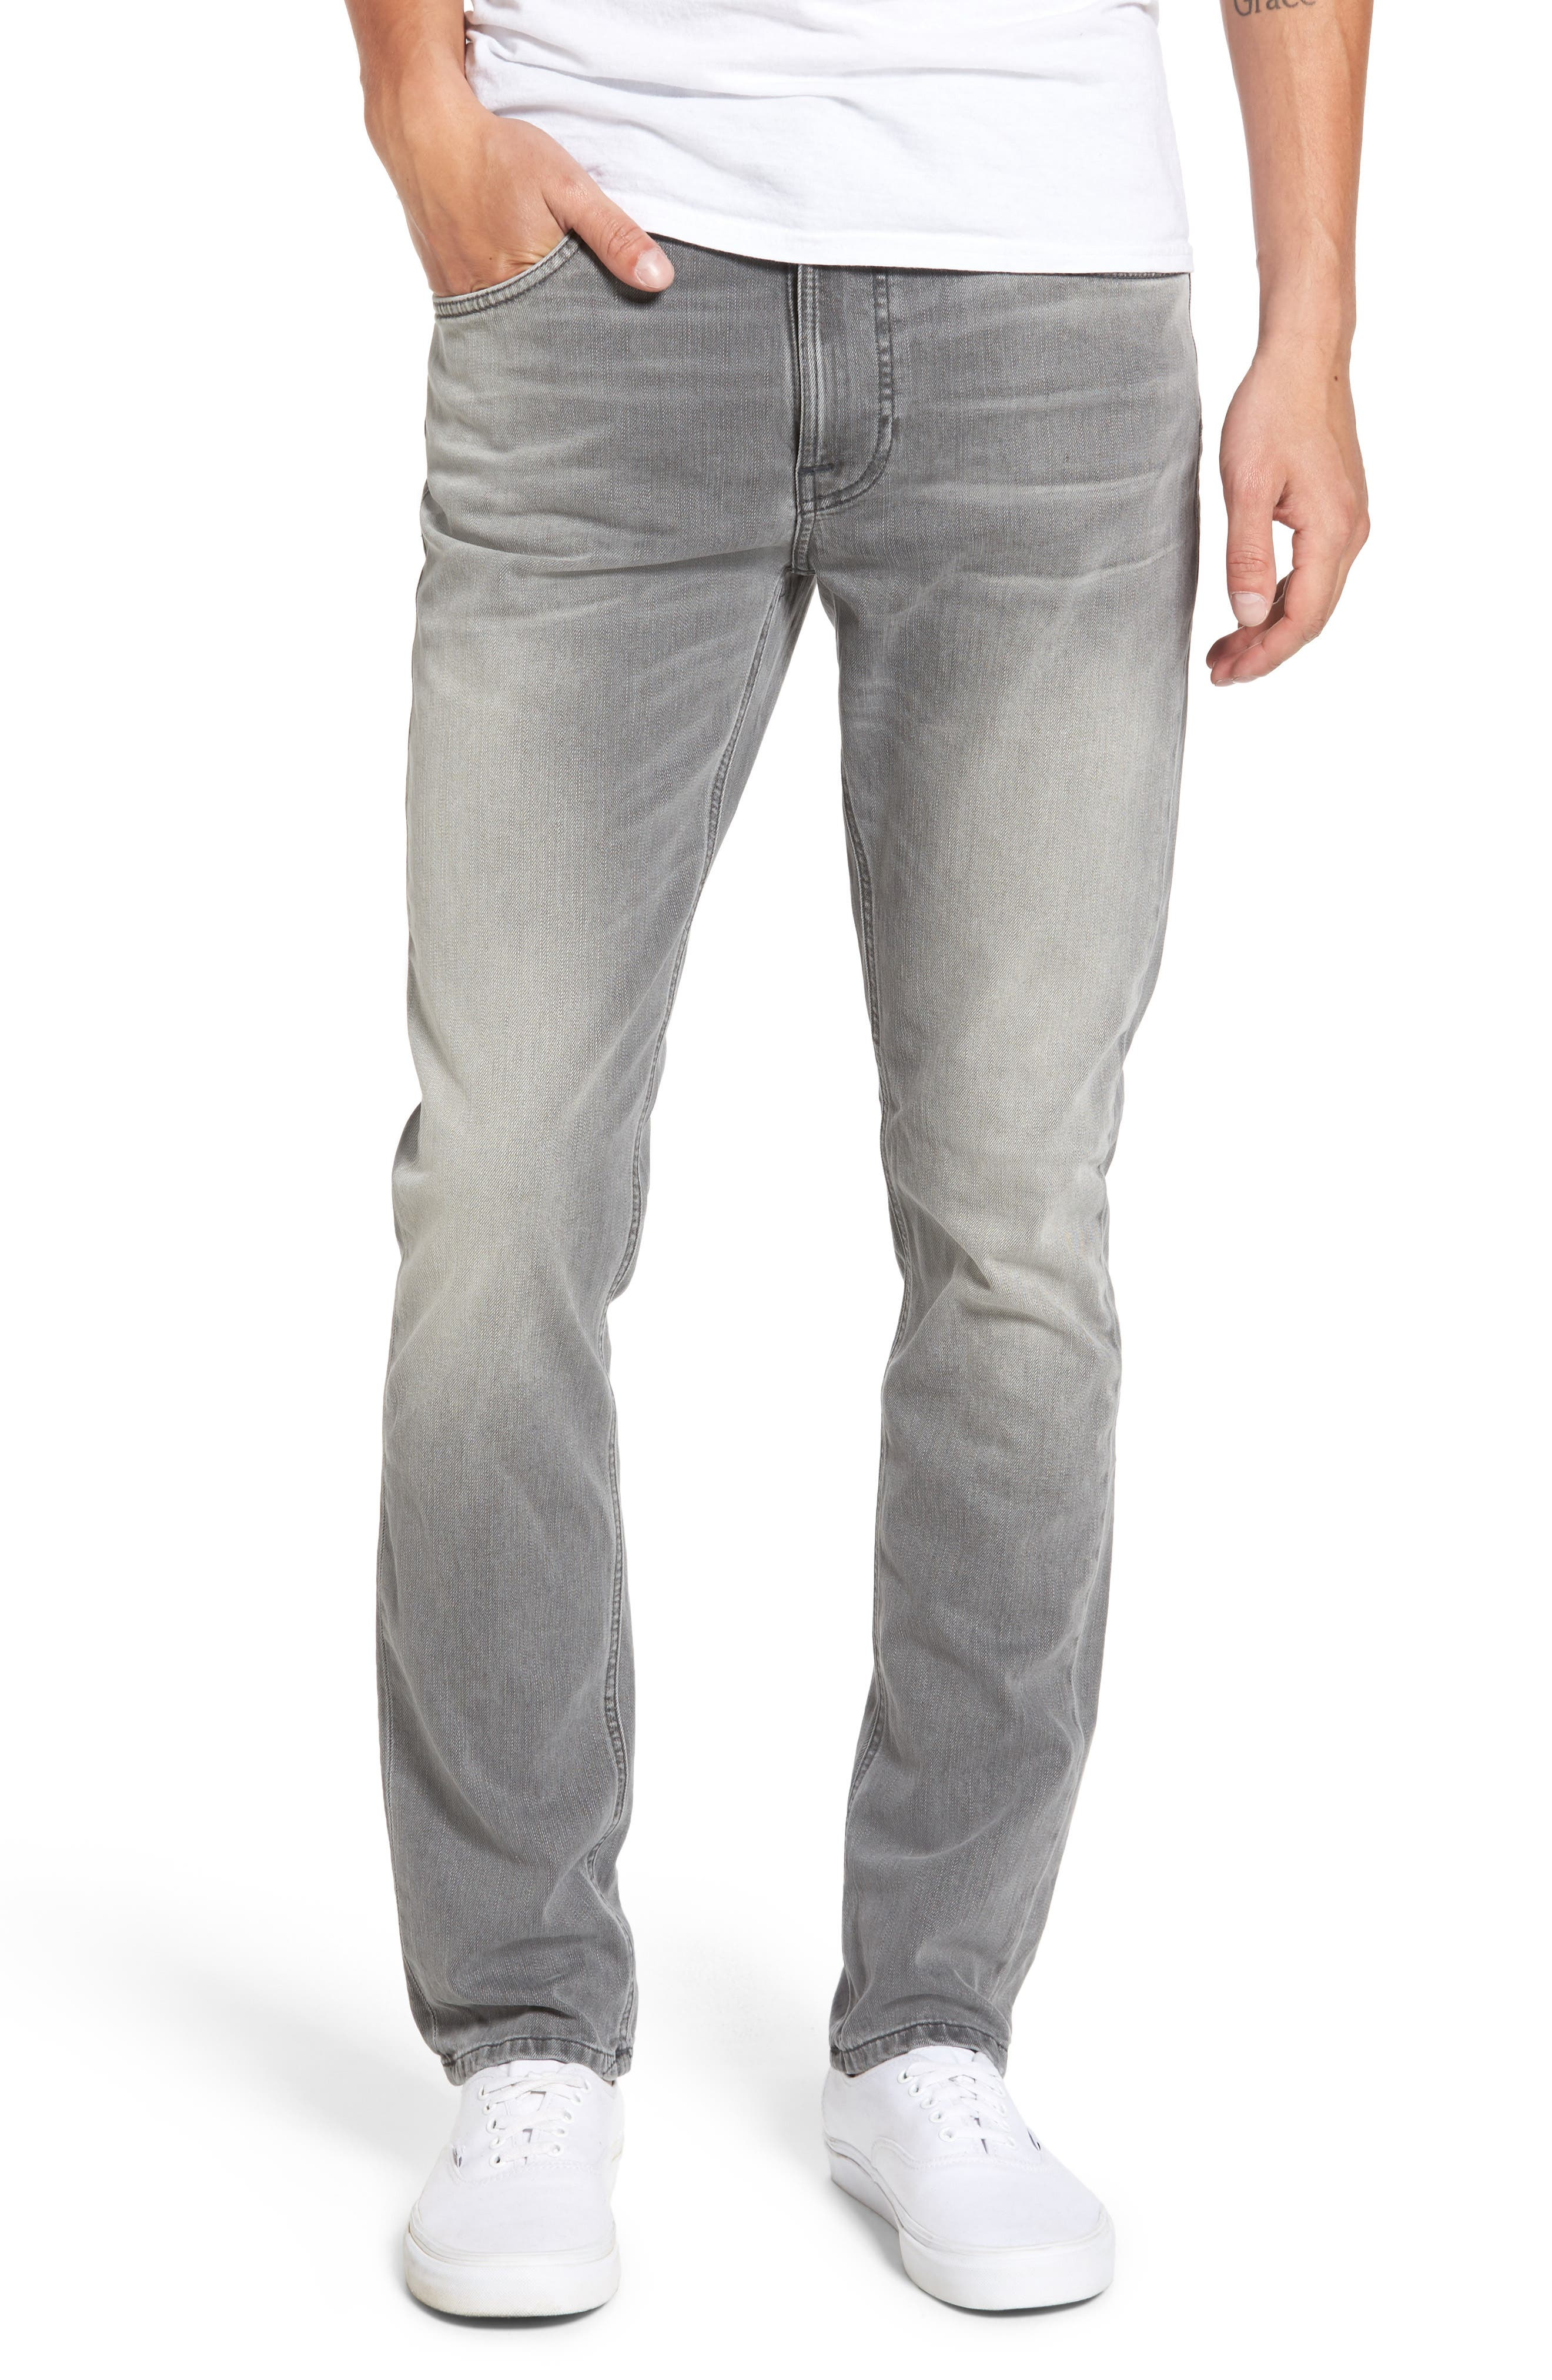 Lean Dean Slouchy Skinny Fit Jeans,                         Main,                         color, 060